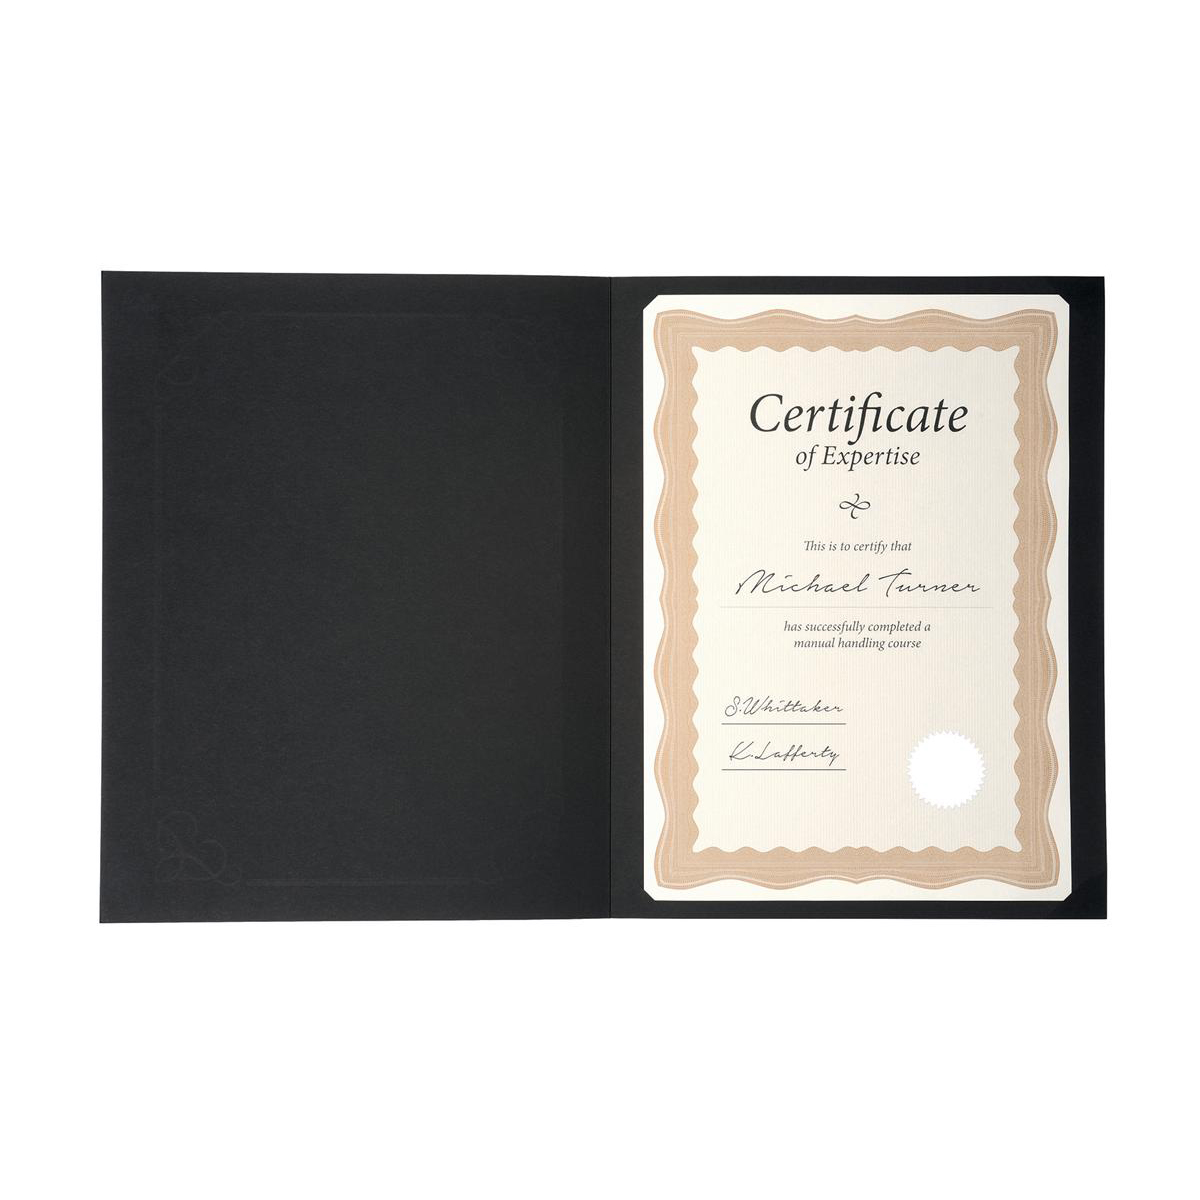 Certificate Covers Linen Finish Heavyweight Card 240g A4 Black Pack 5